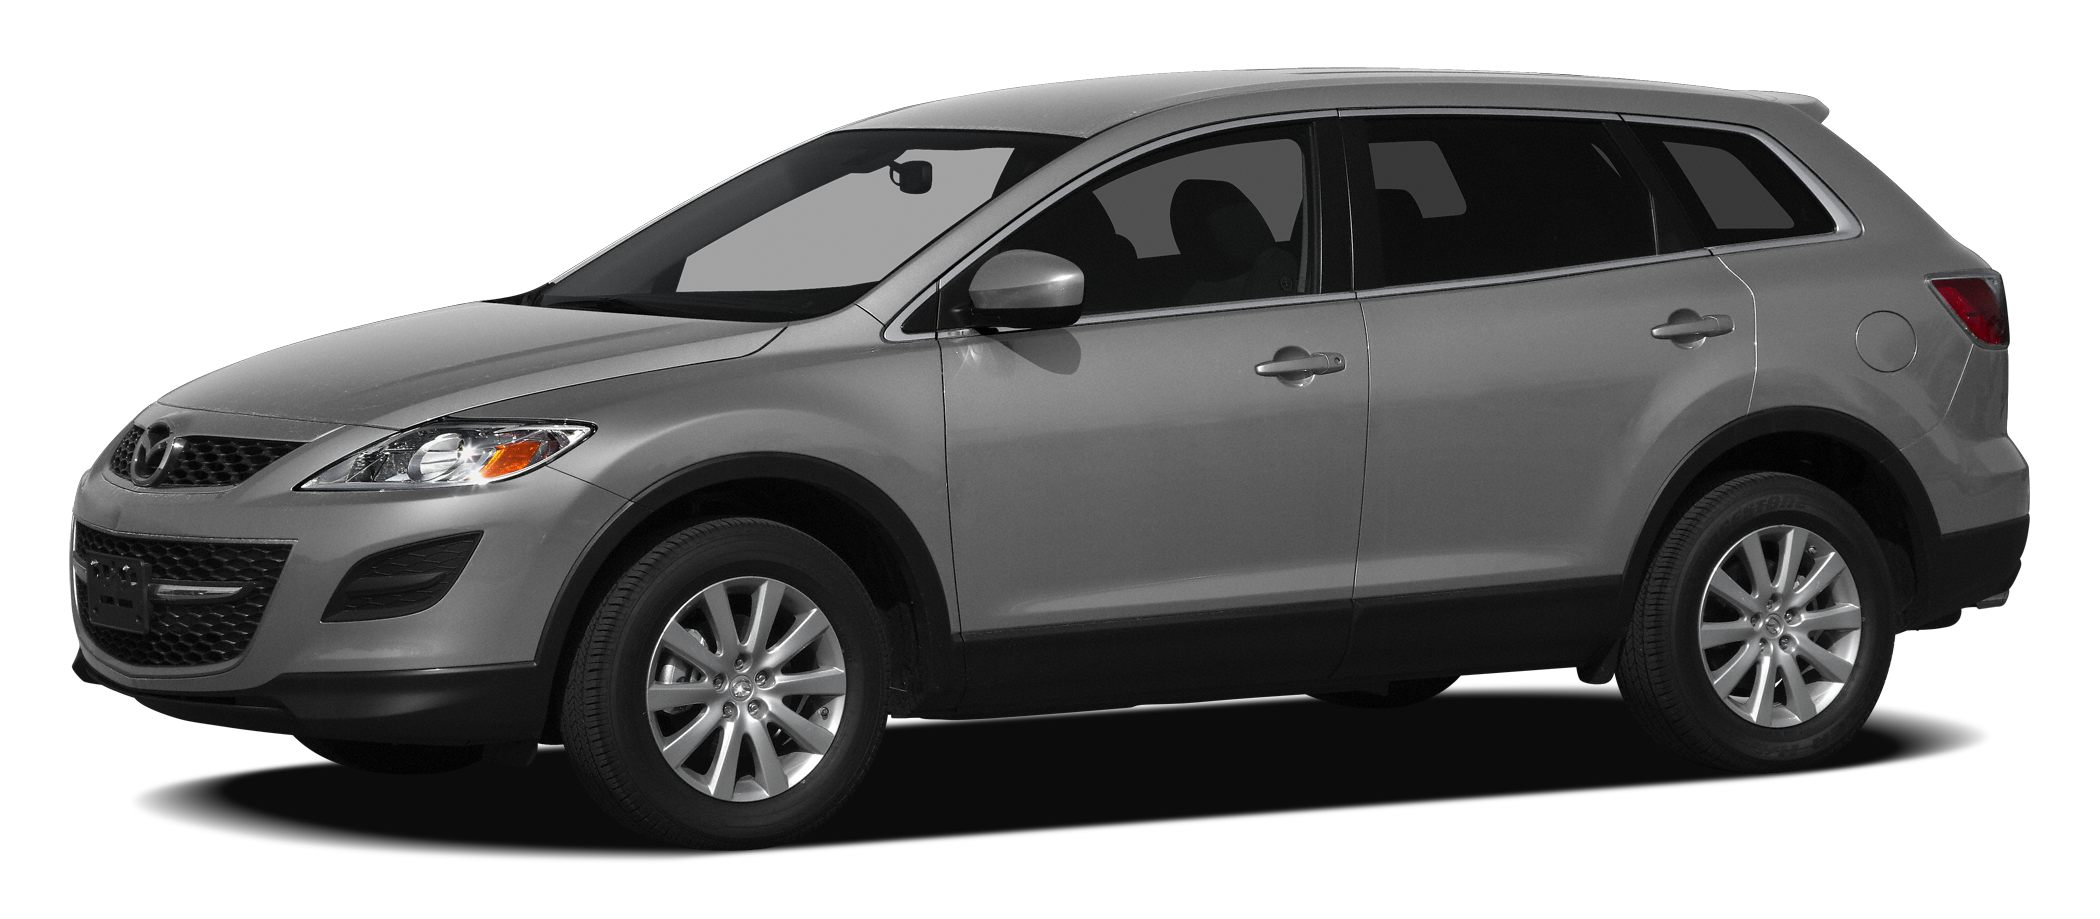 2011 Mazda CX-9 Touring Miles 50324Color Liquid Silver Metallic Stock 16743 VIN JM3TB3CV5B03